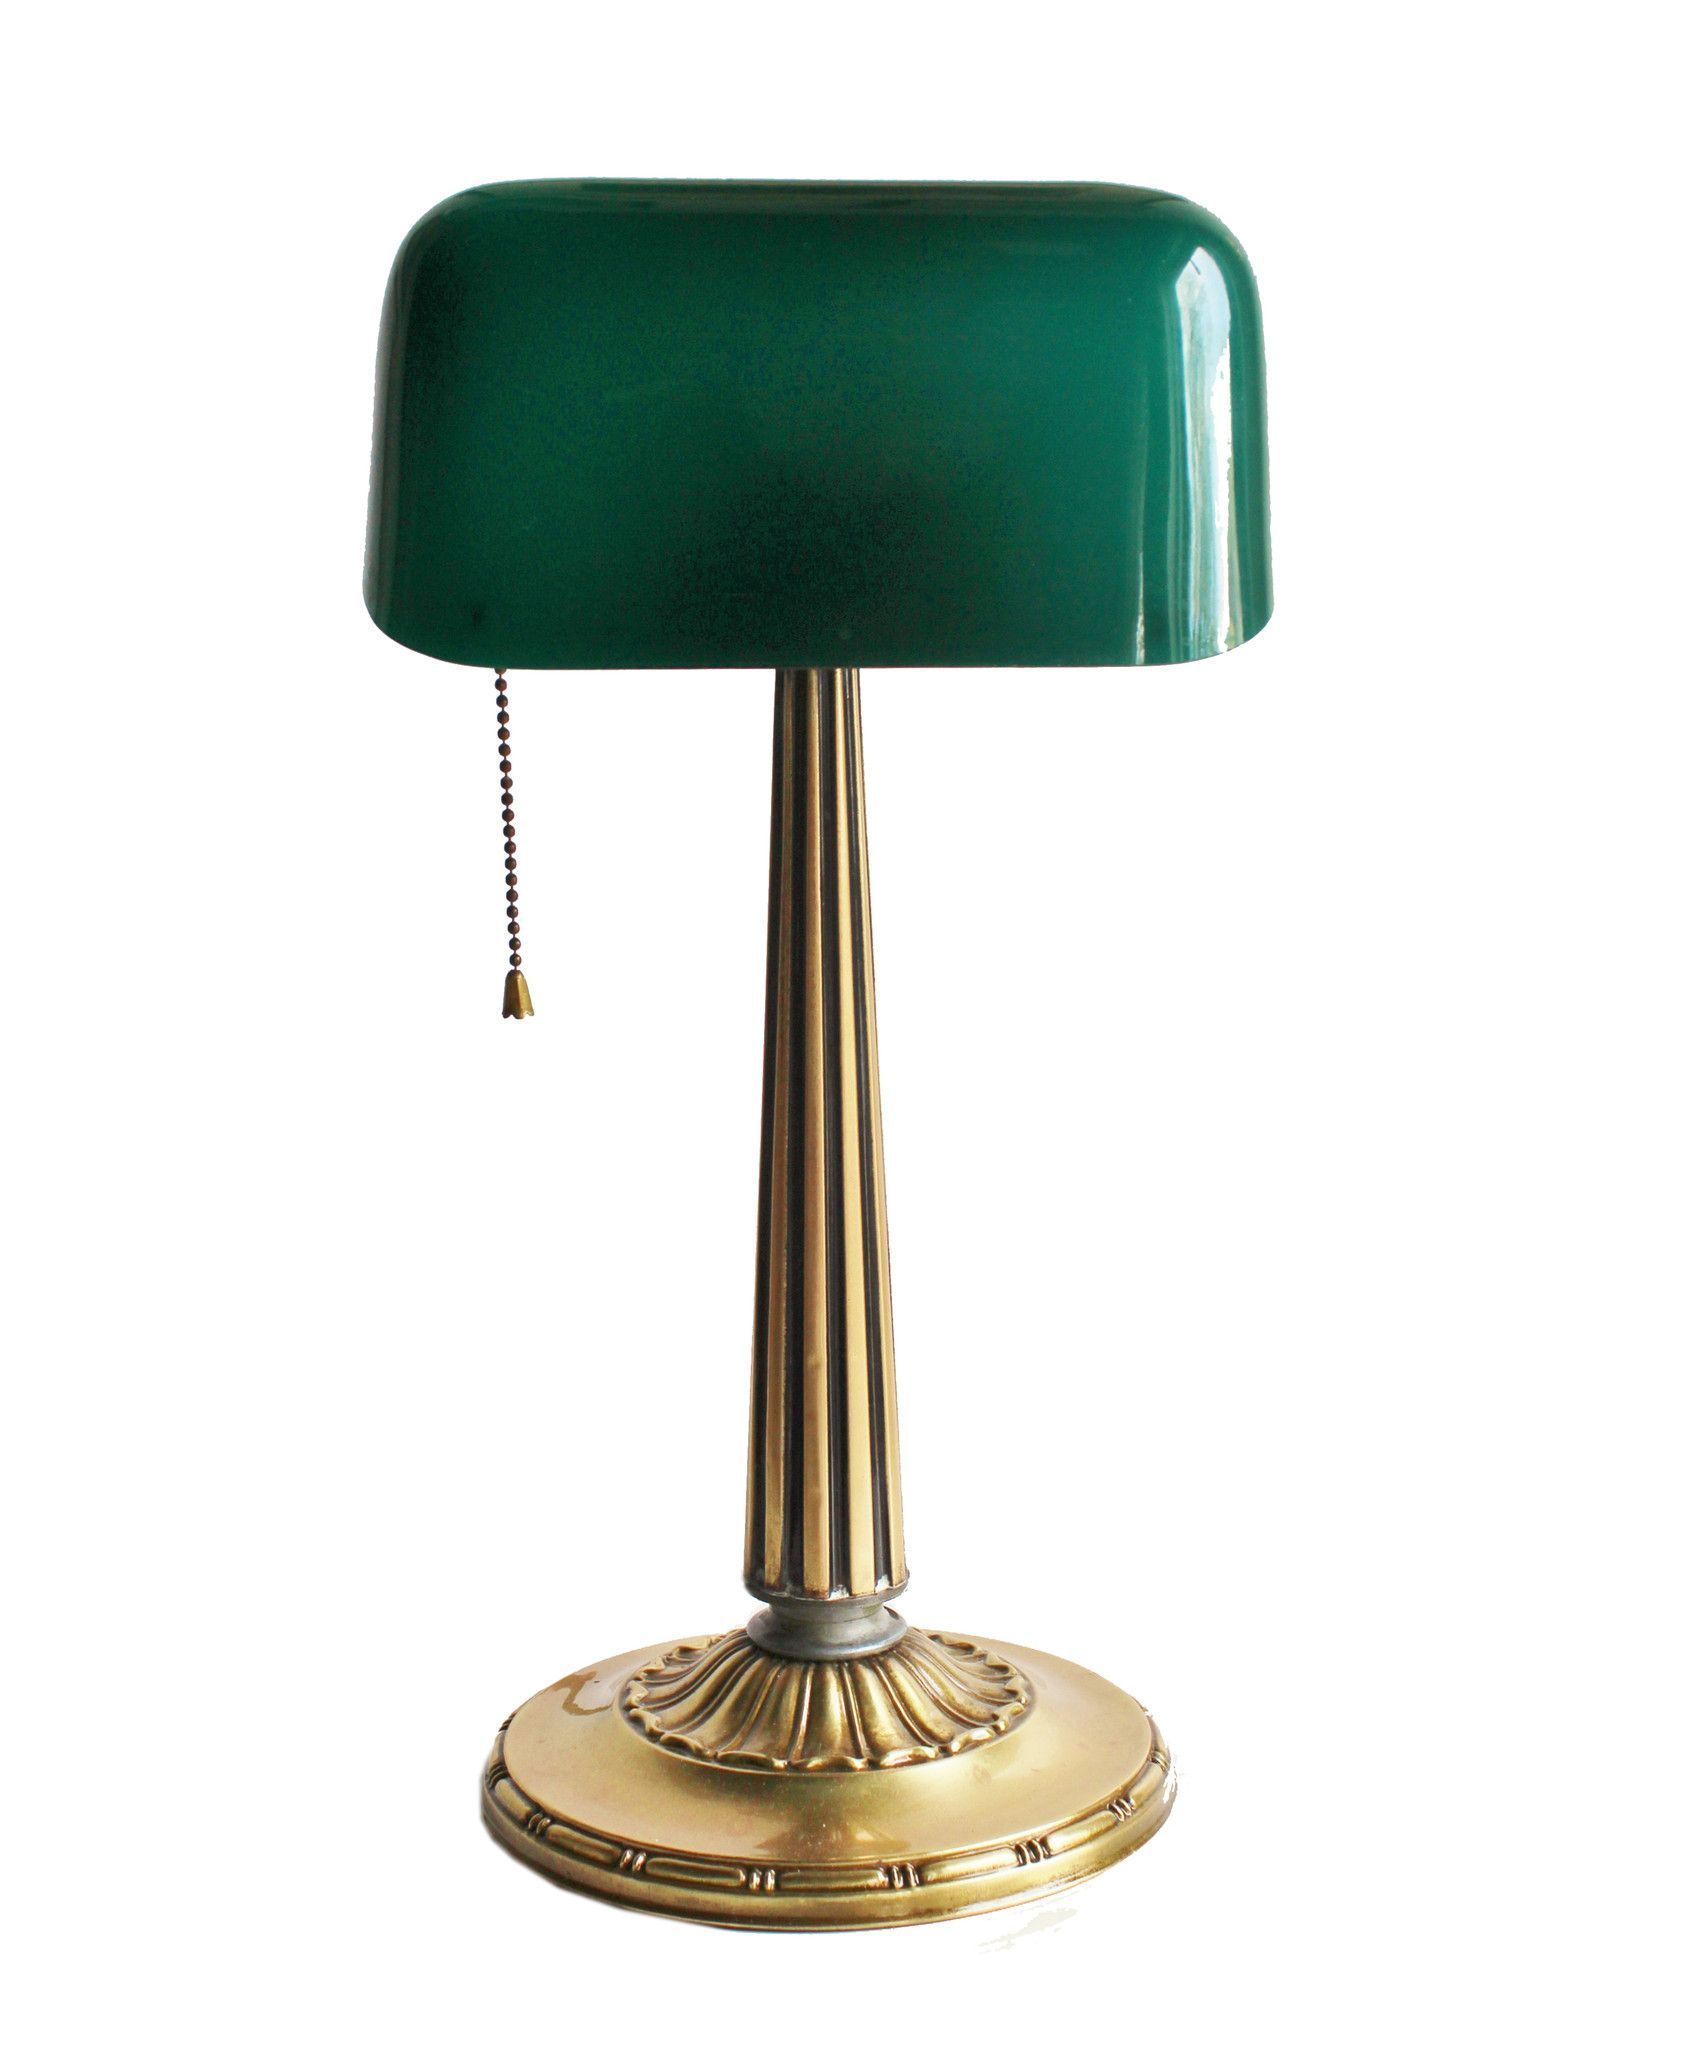 1916 antique emeralite brass task lamp solid brass base 1916 antique emeralite brass task lamp solid brass base original green glass shade aloadofball Choice Image